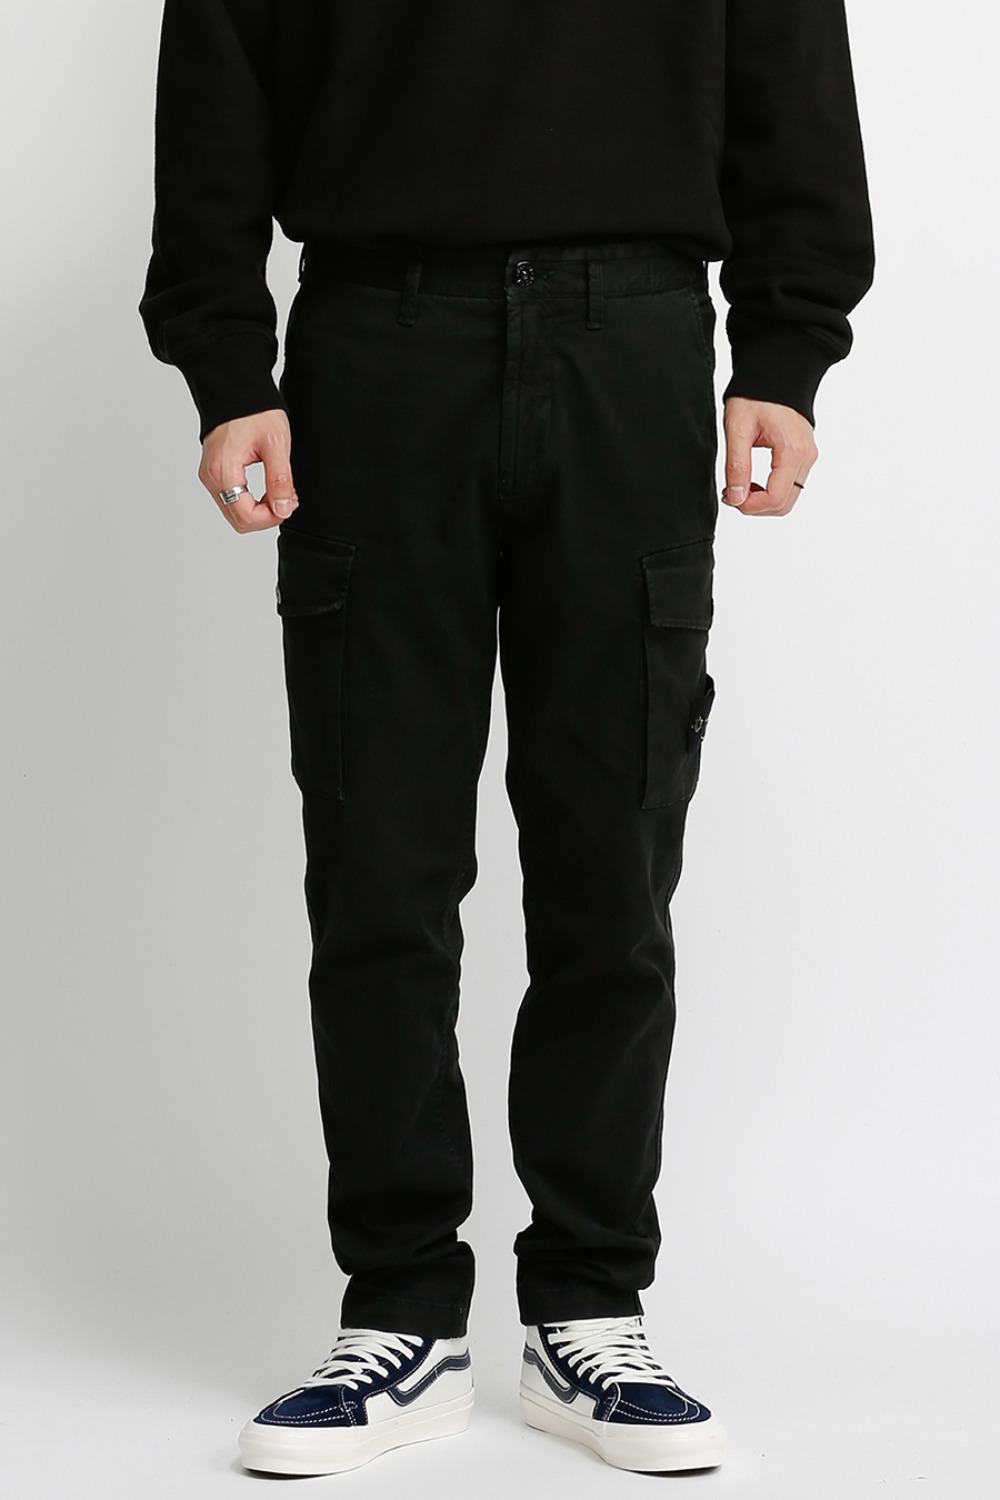 T.CO+OLD STRETCH CO BROKEN TWILL CARGO PANTS(318L1) BLACK